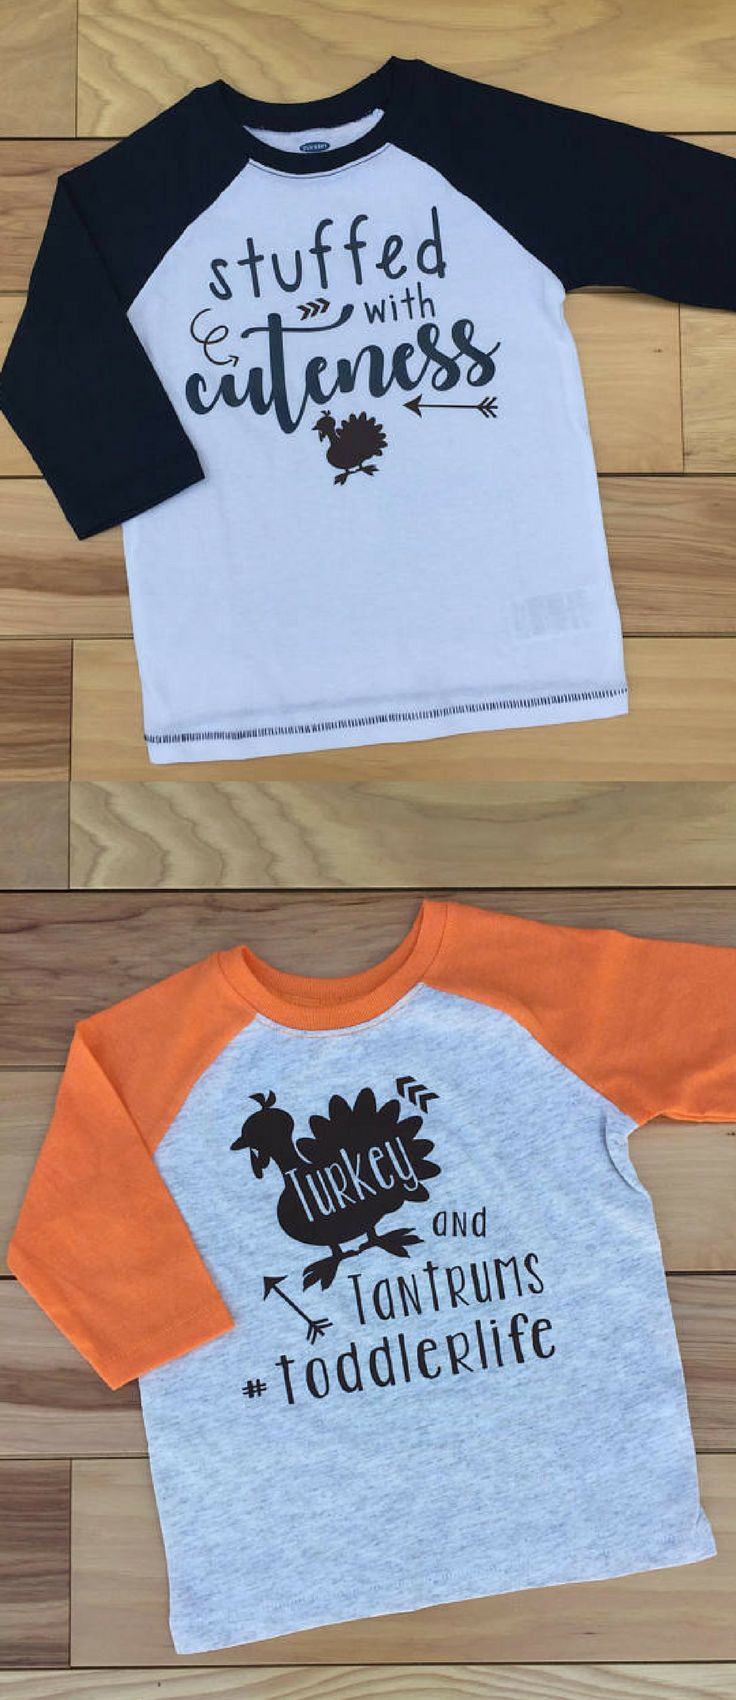 Funny toddler shirts for Thanksgiving!  Stuffed with cuteness, Turkey and tantrums = toddlerlife #thanksgiving #funnyshirts #kids #toddler #toddlerlife #shirts #funny #cute #outfit #promoted #etsy https://presentbaby.com